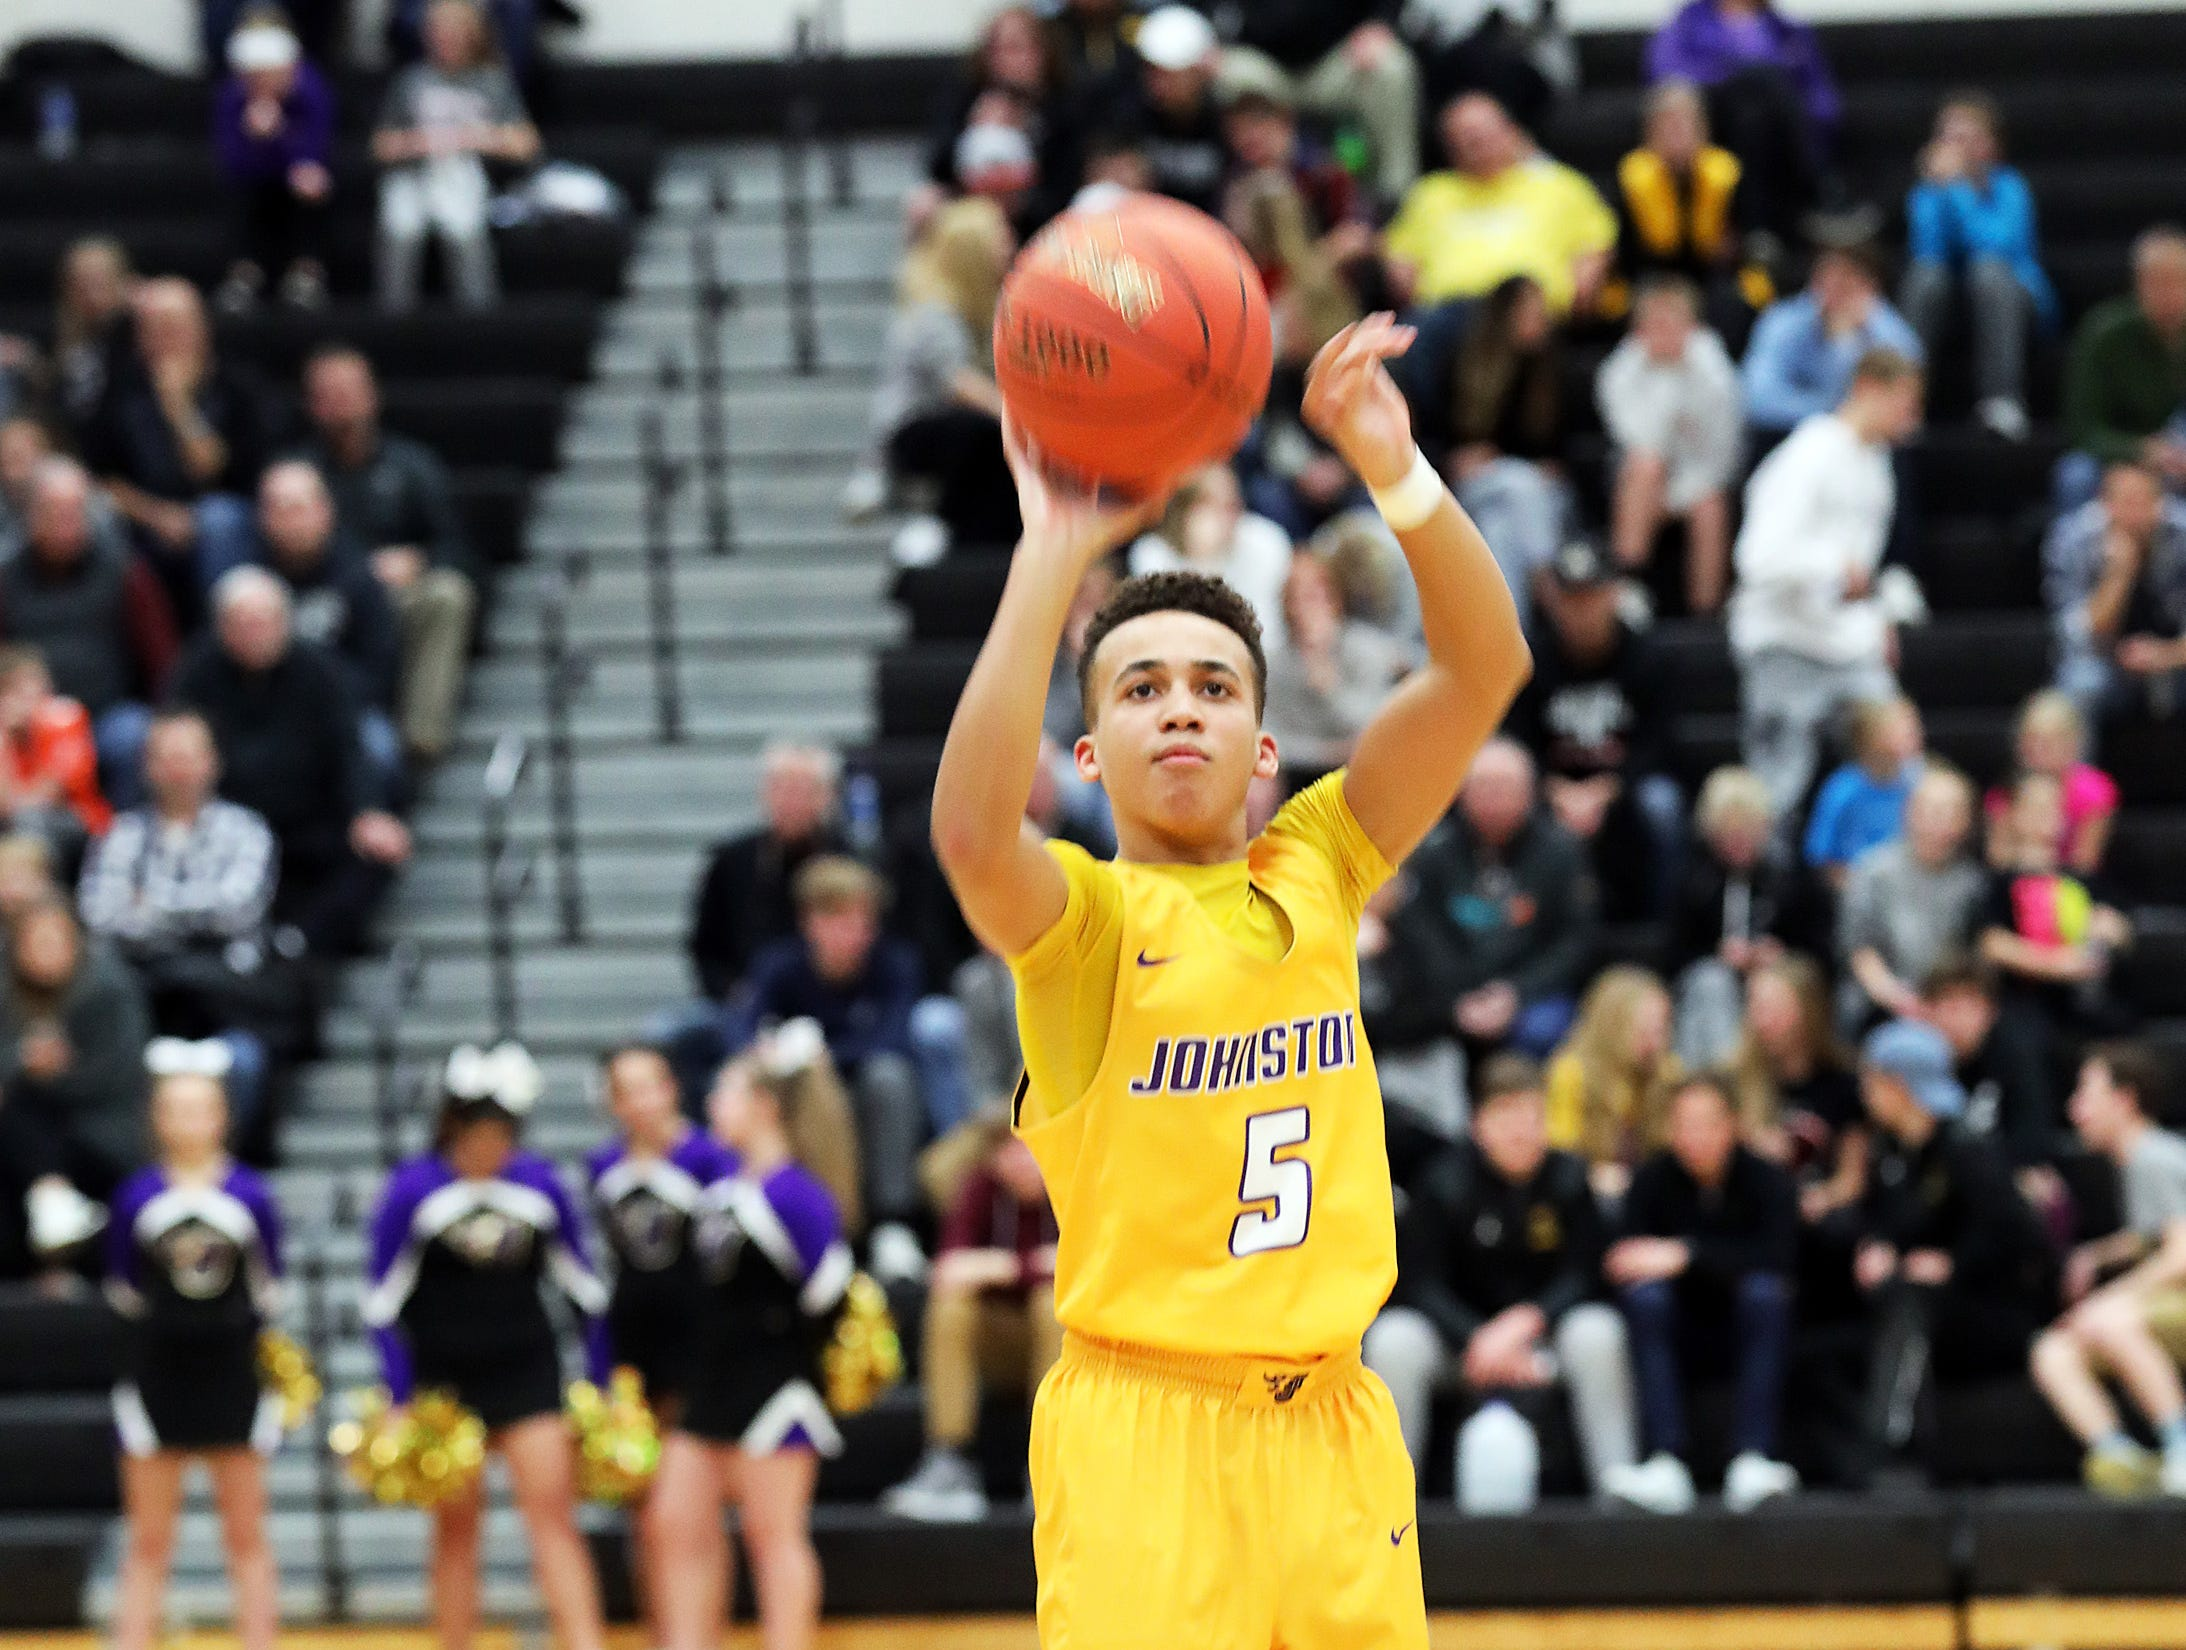 Johnston freshman and sharp-shooter Trey Lewis drains another three-pointer as the Johnston Dragons compete against the Ankeny Centennial Jaguars in high school boys basketball on Friday, Jan. 4, 2019 at Ankeny Centennial High School.  Centennial won 53 to 46.